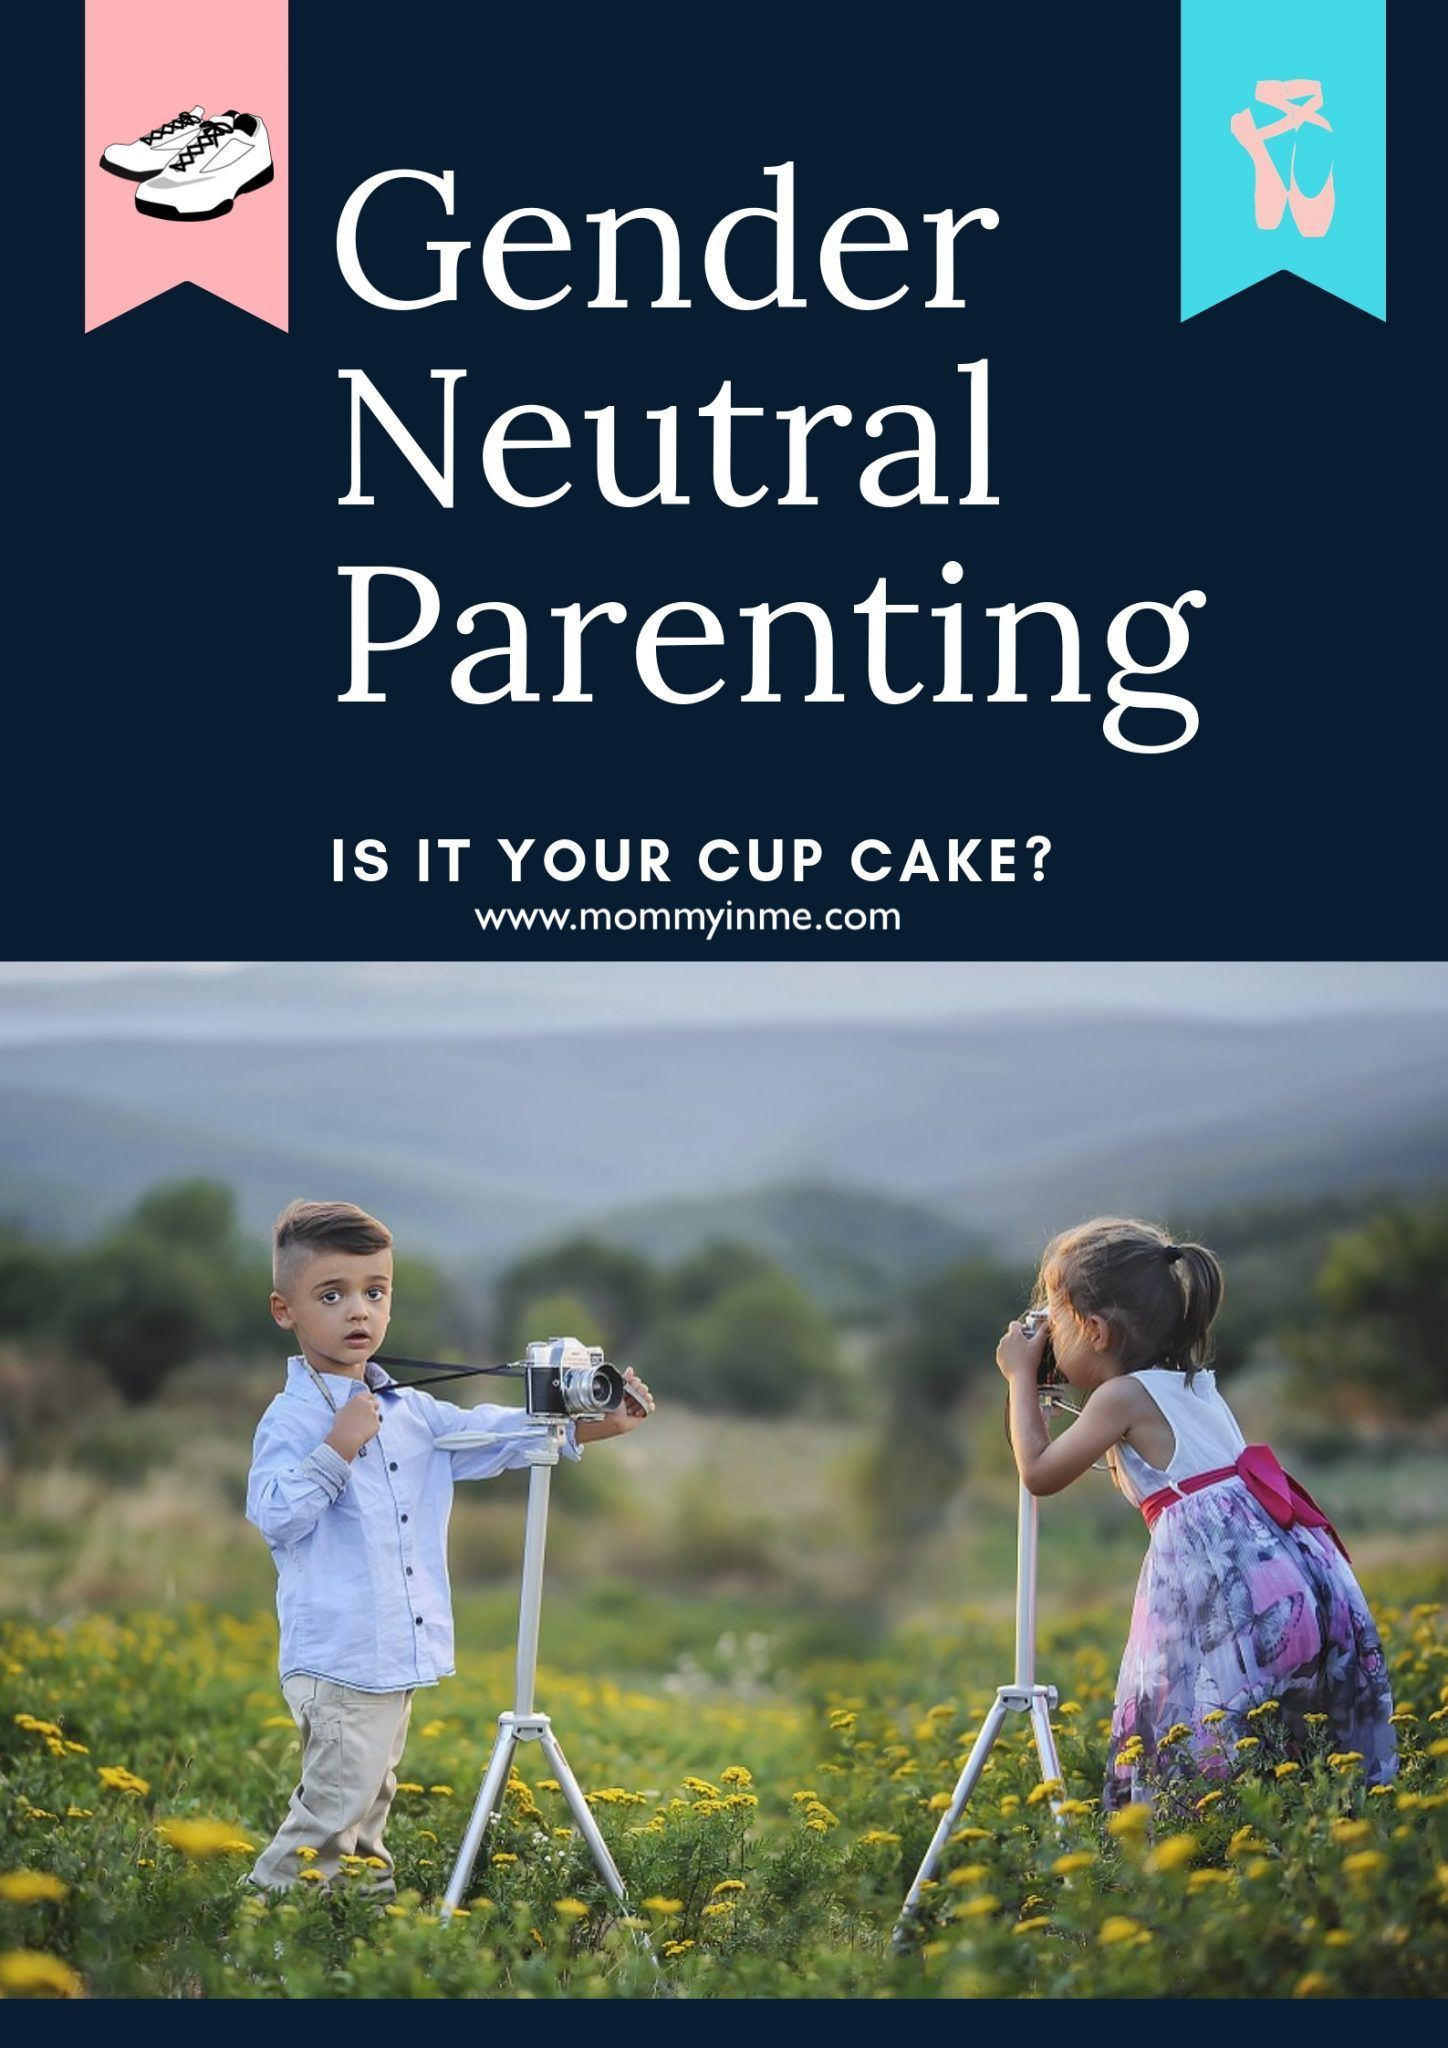 Do you believe in Gender Neutral Parenting? Parenting